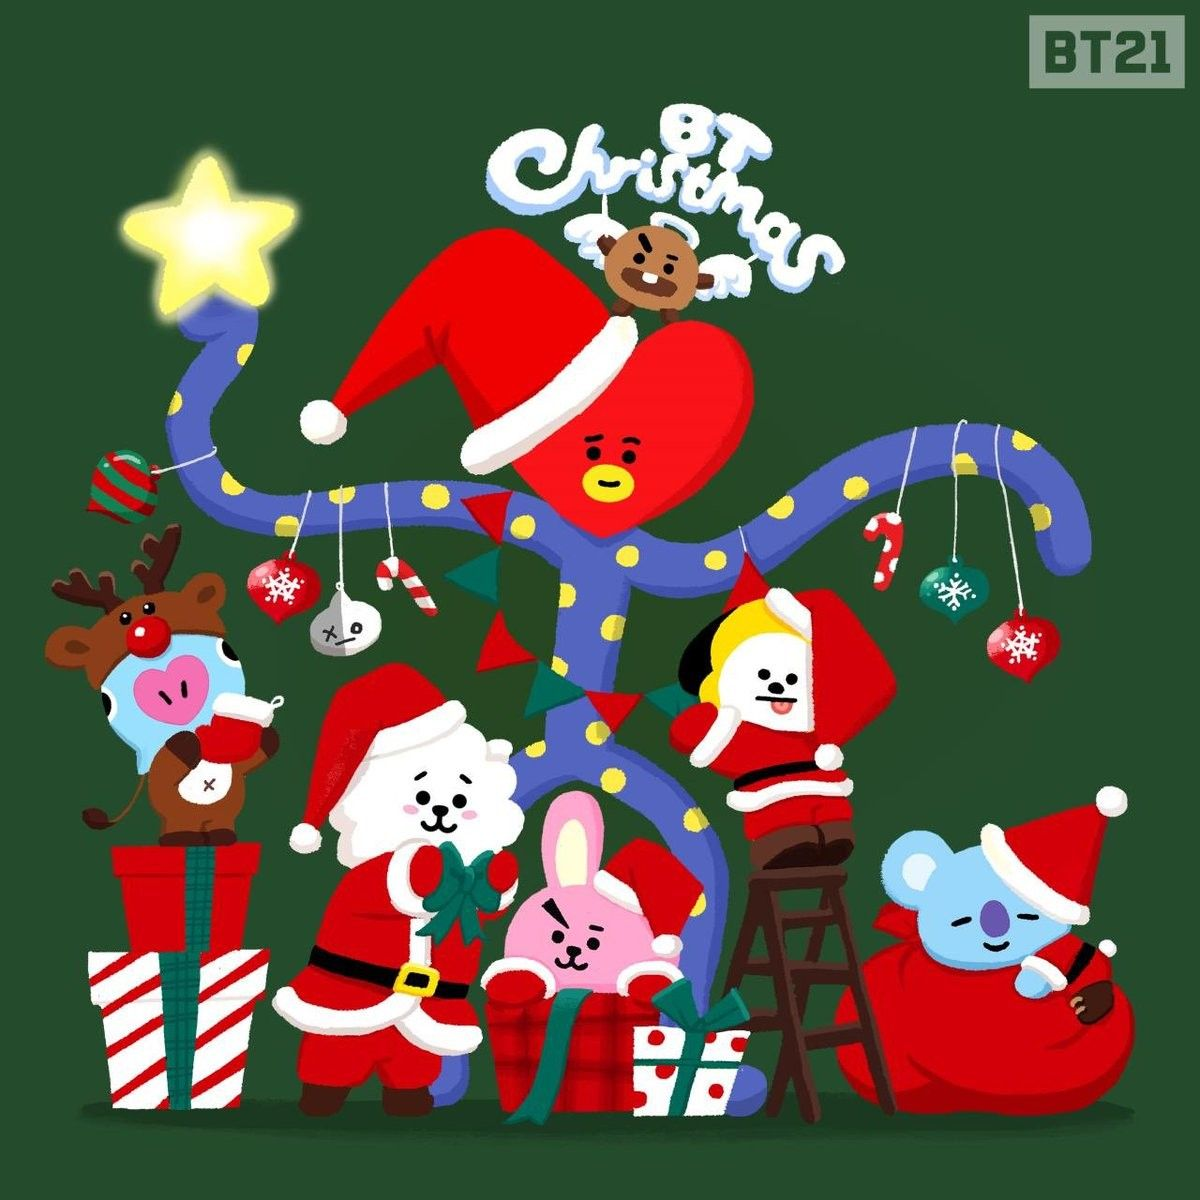 Bt21 Wishing All A Very Merry Merry Christmas Bts Christmas Christmas Art Christmas Wallpaper